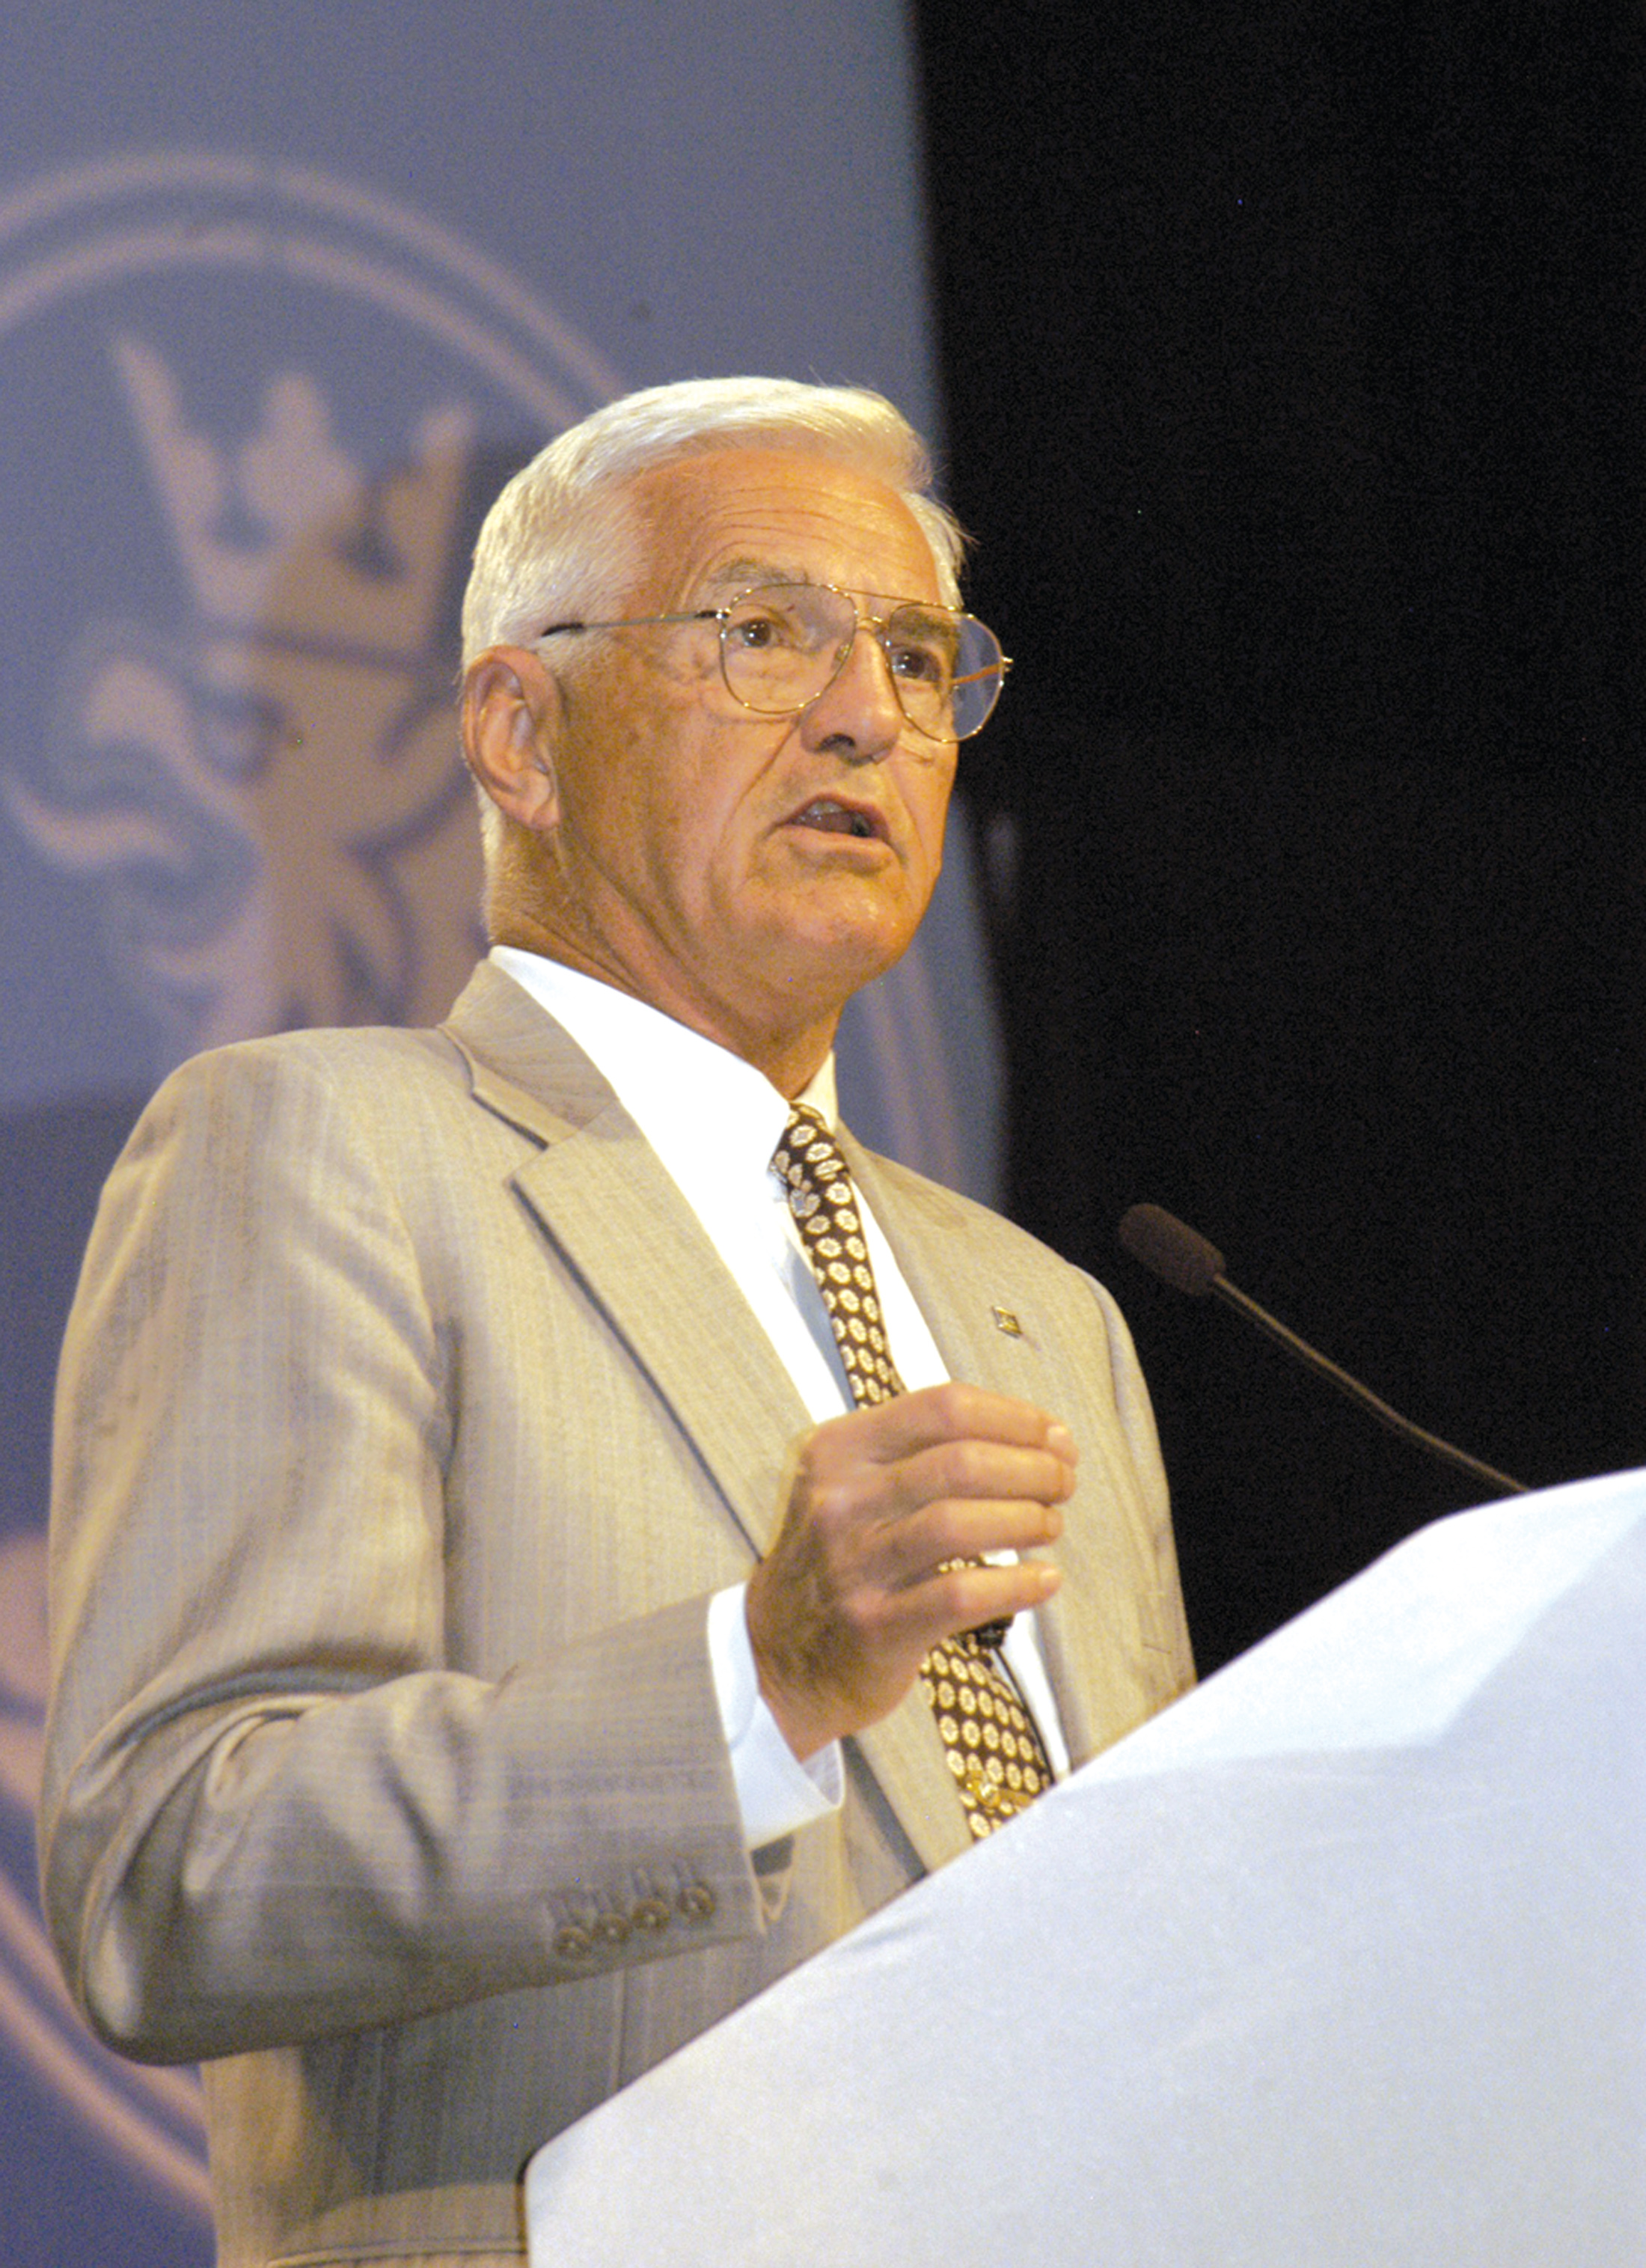 GM's Bob Lutz Sets the Record Straight at AutoVenture 2005